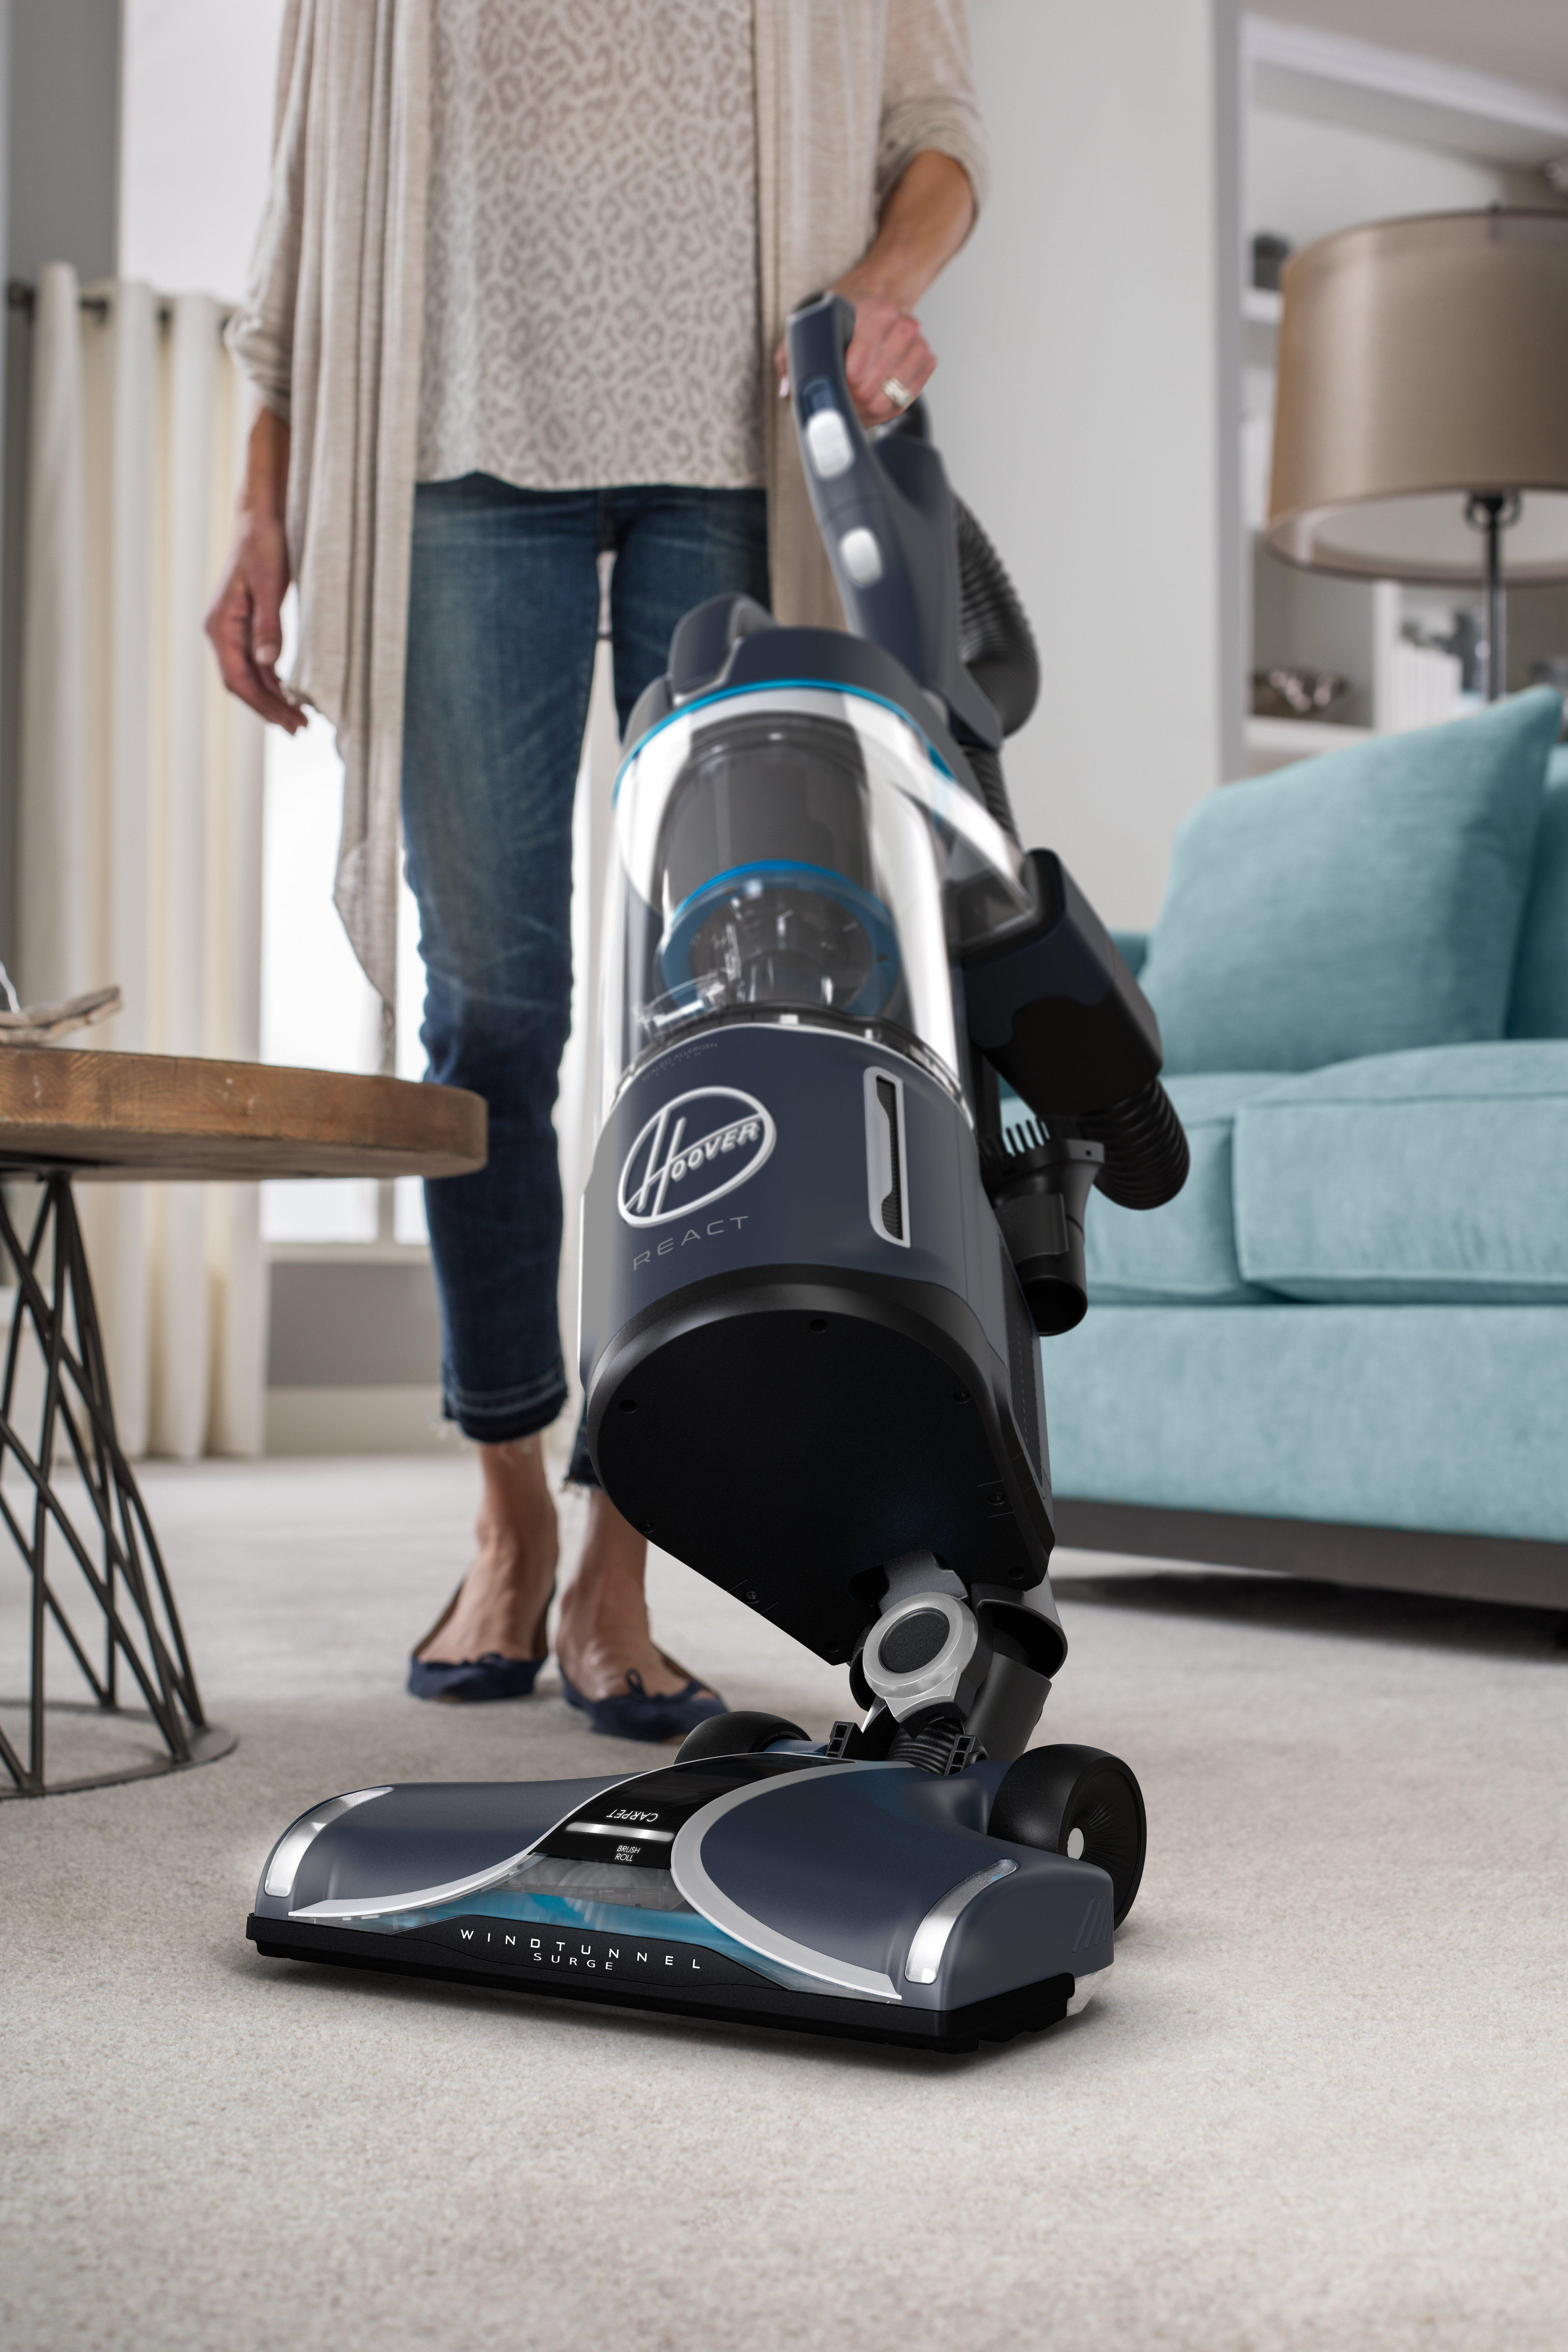 REACT Powered Reach Deluxe Upright Vacuum29